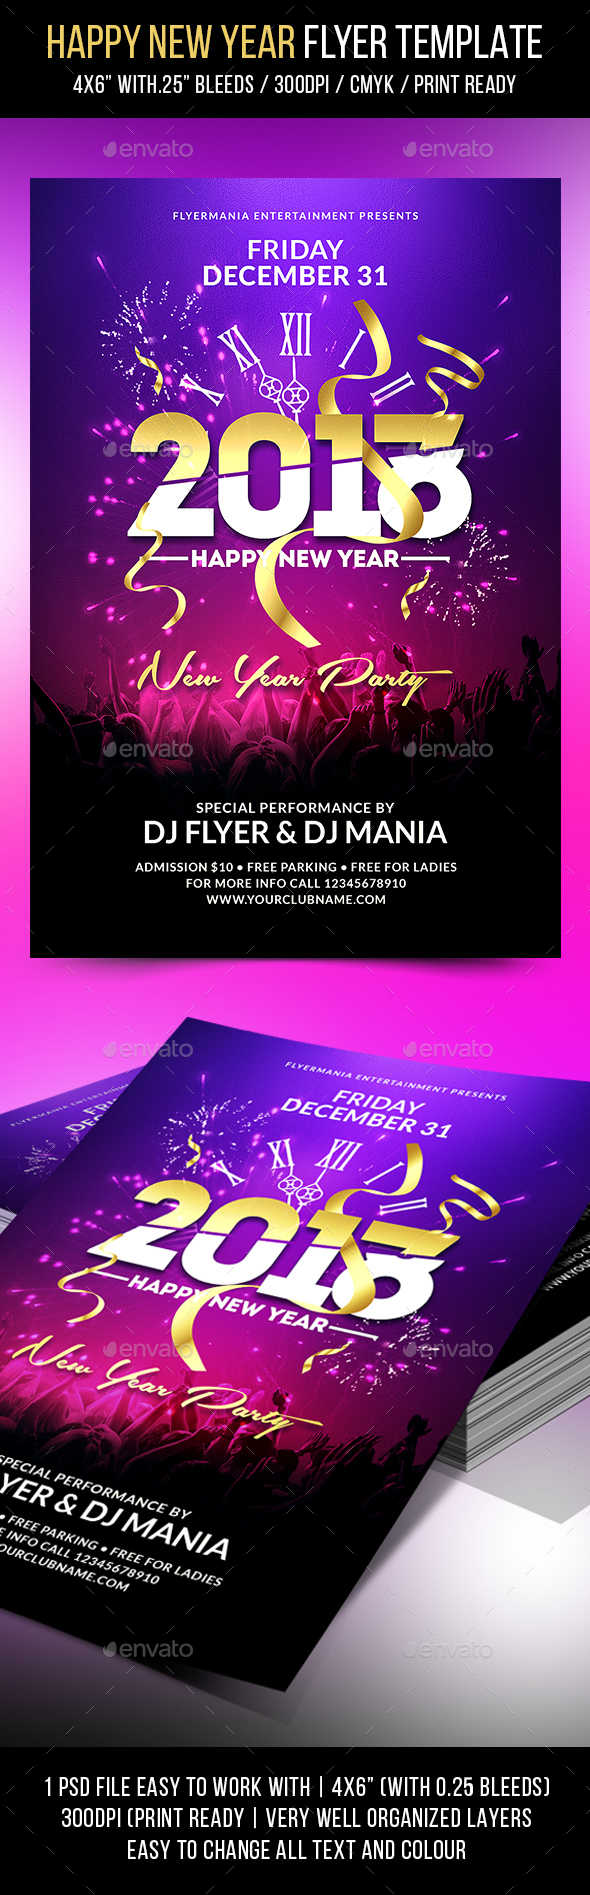 GraphicRiver Happy New Year Flyer Template 21143887